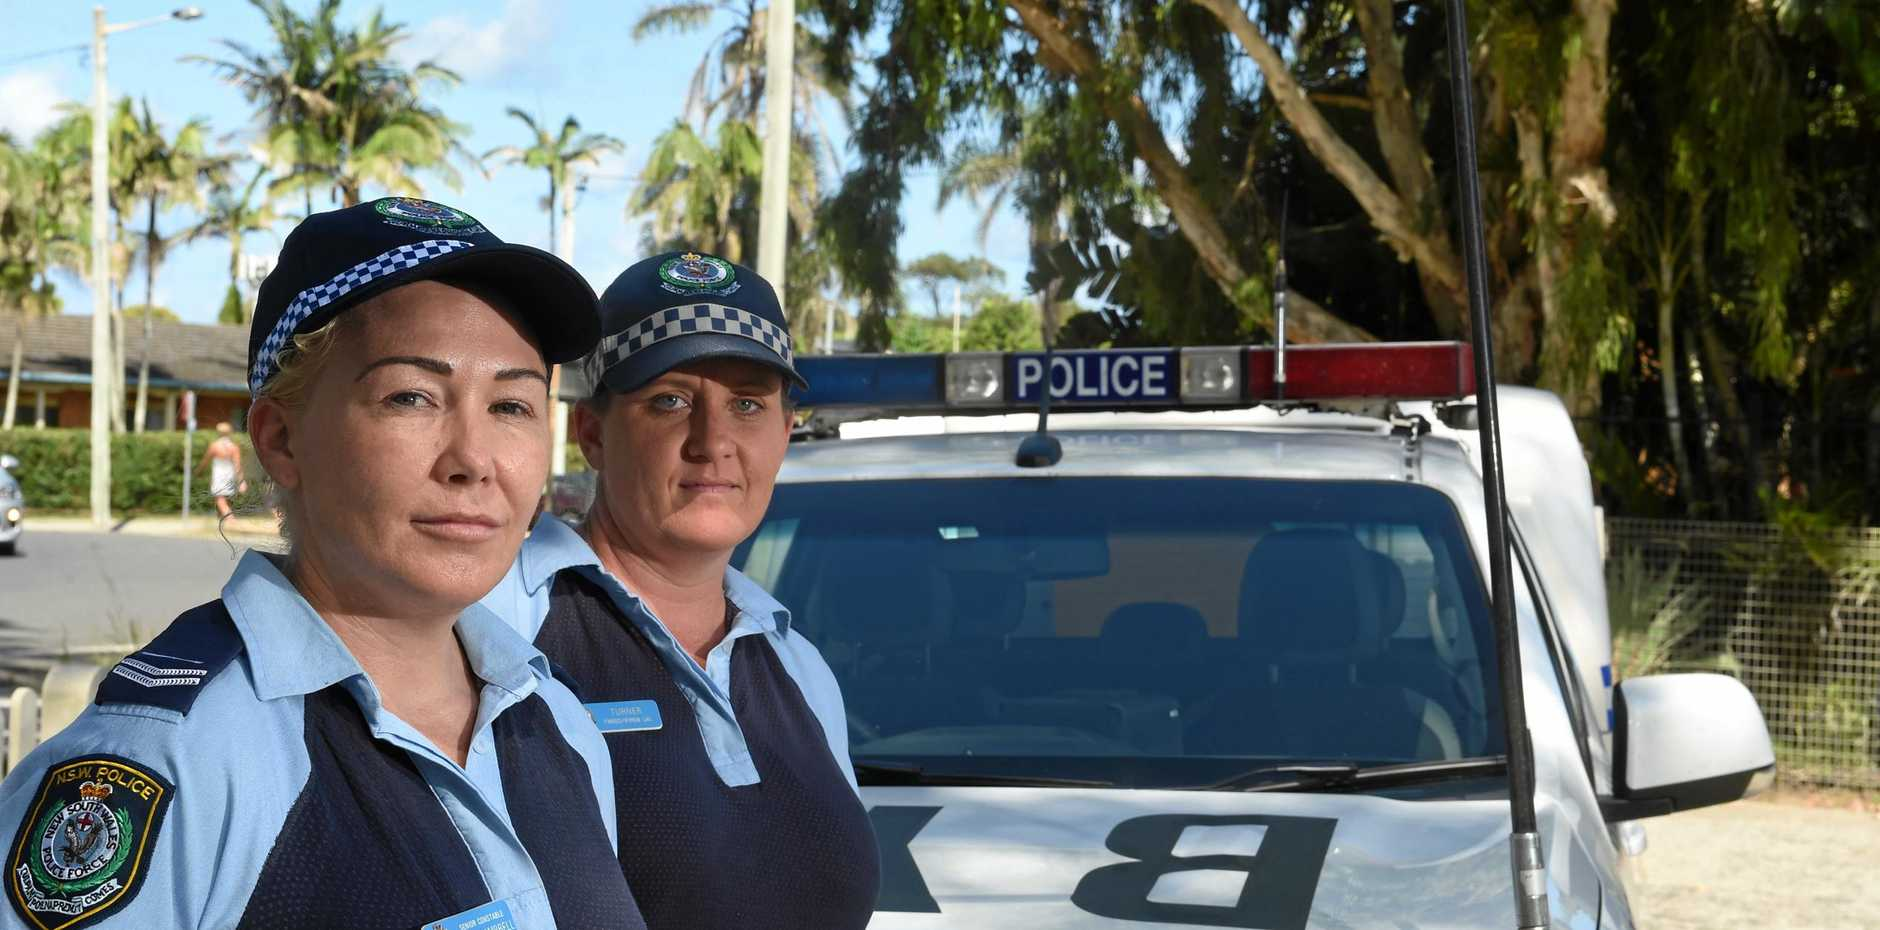 Senior constable Kylie Campbell and Jo Turner have both experienced violence on the job as police officers with suspects physically assaulting them in the course of their duties.